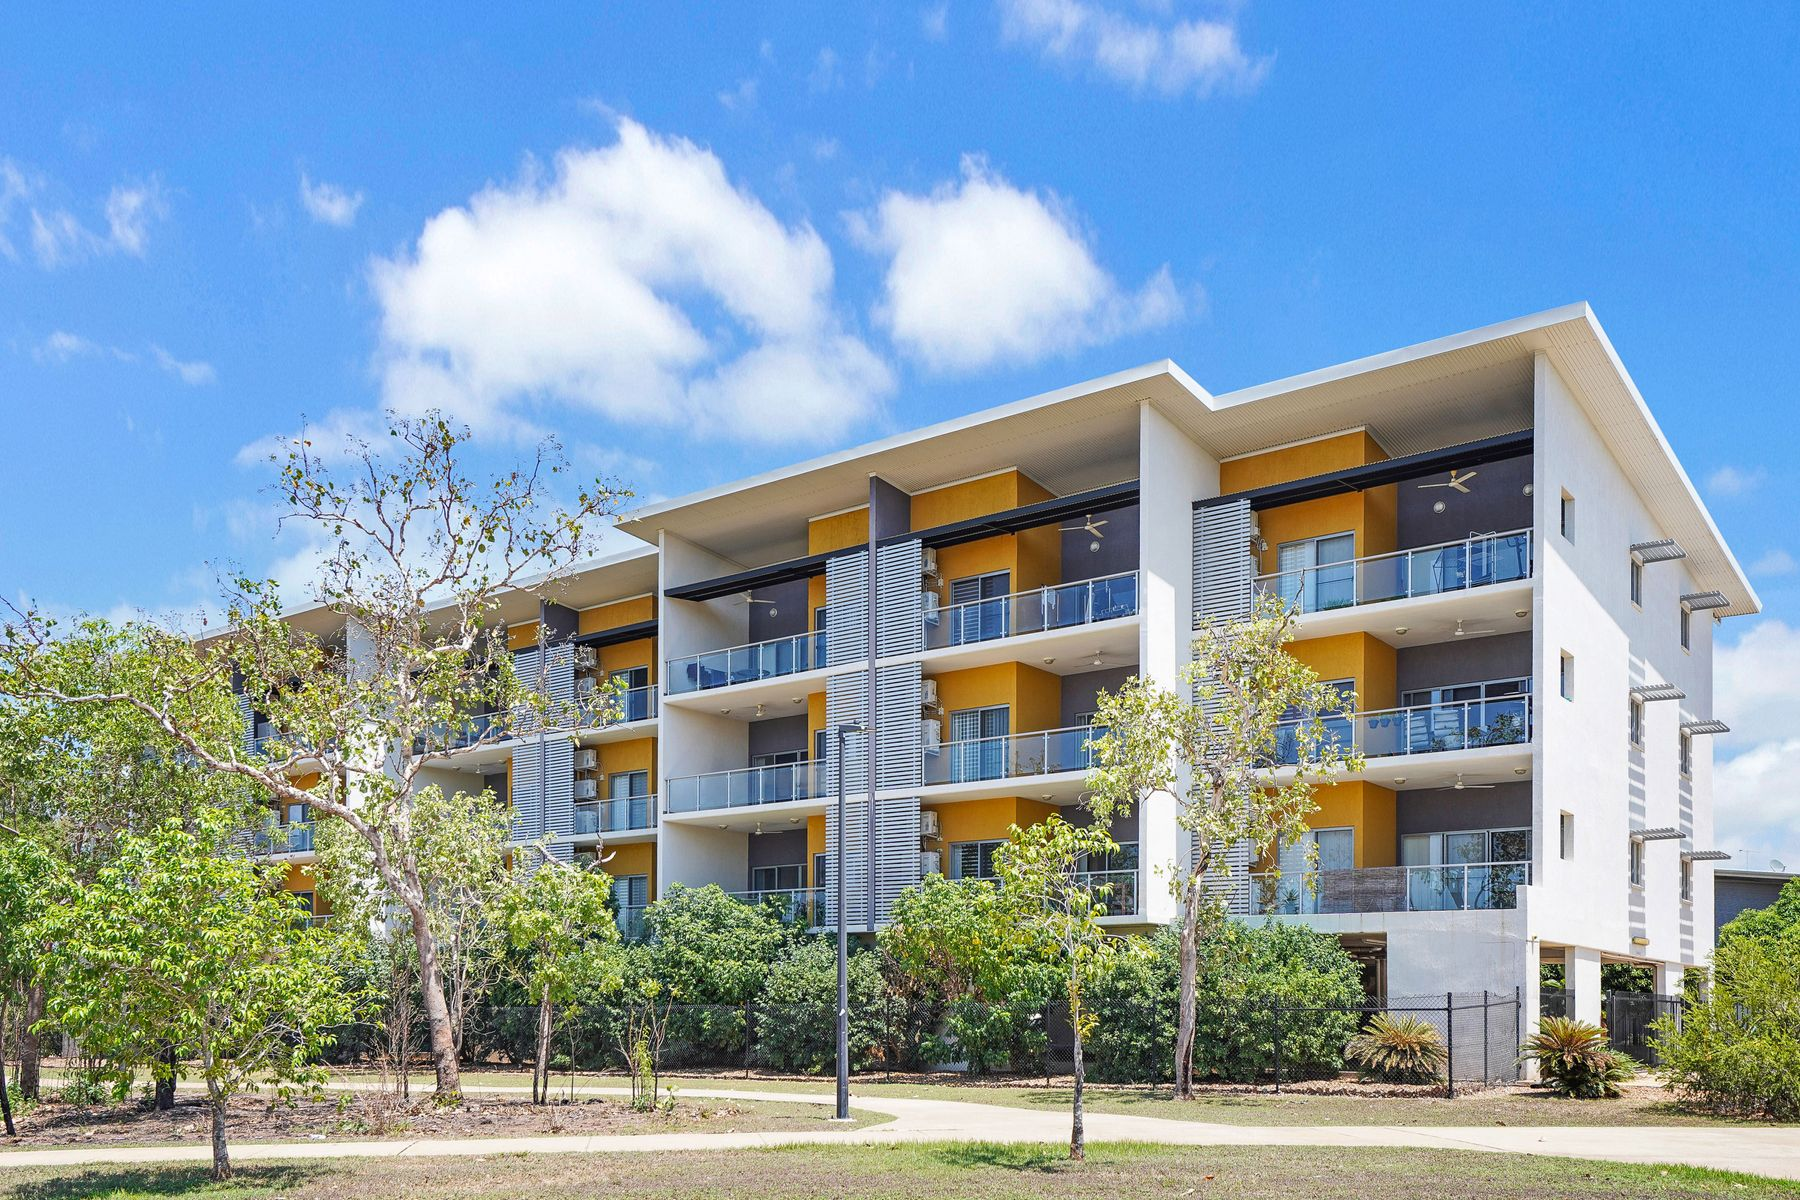 115/250 Farrar Boulevard, Johnston, NT 0832